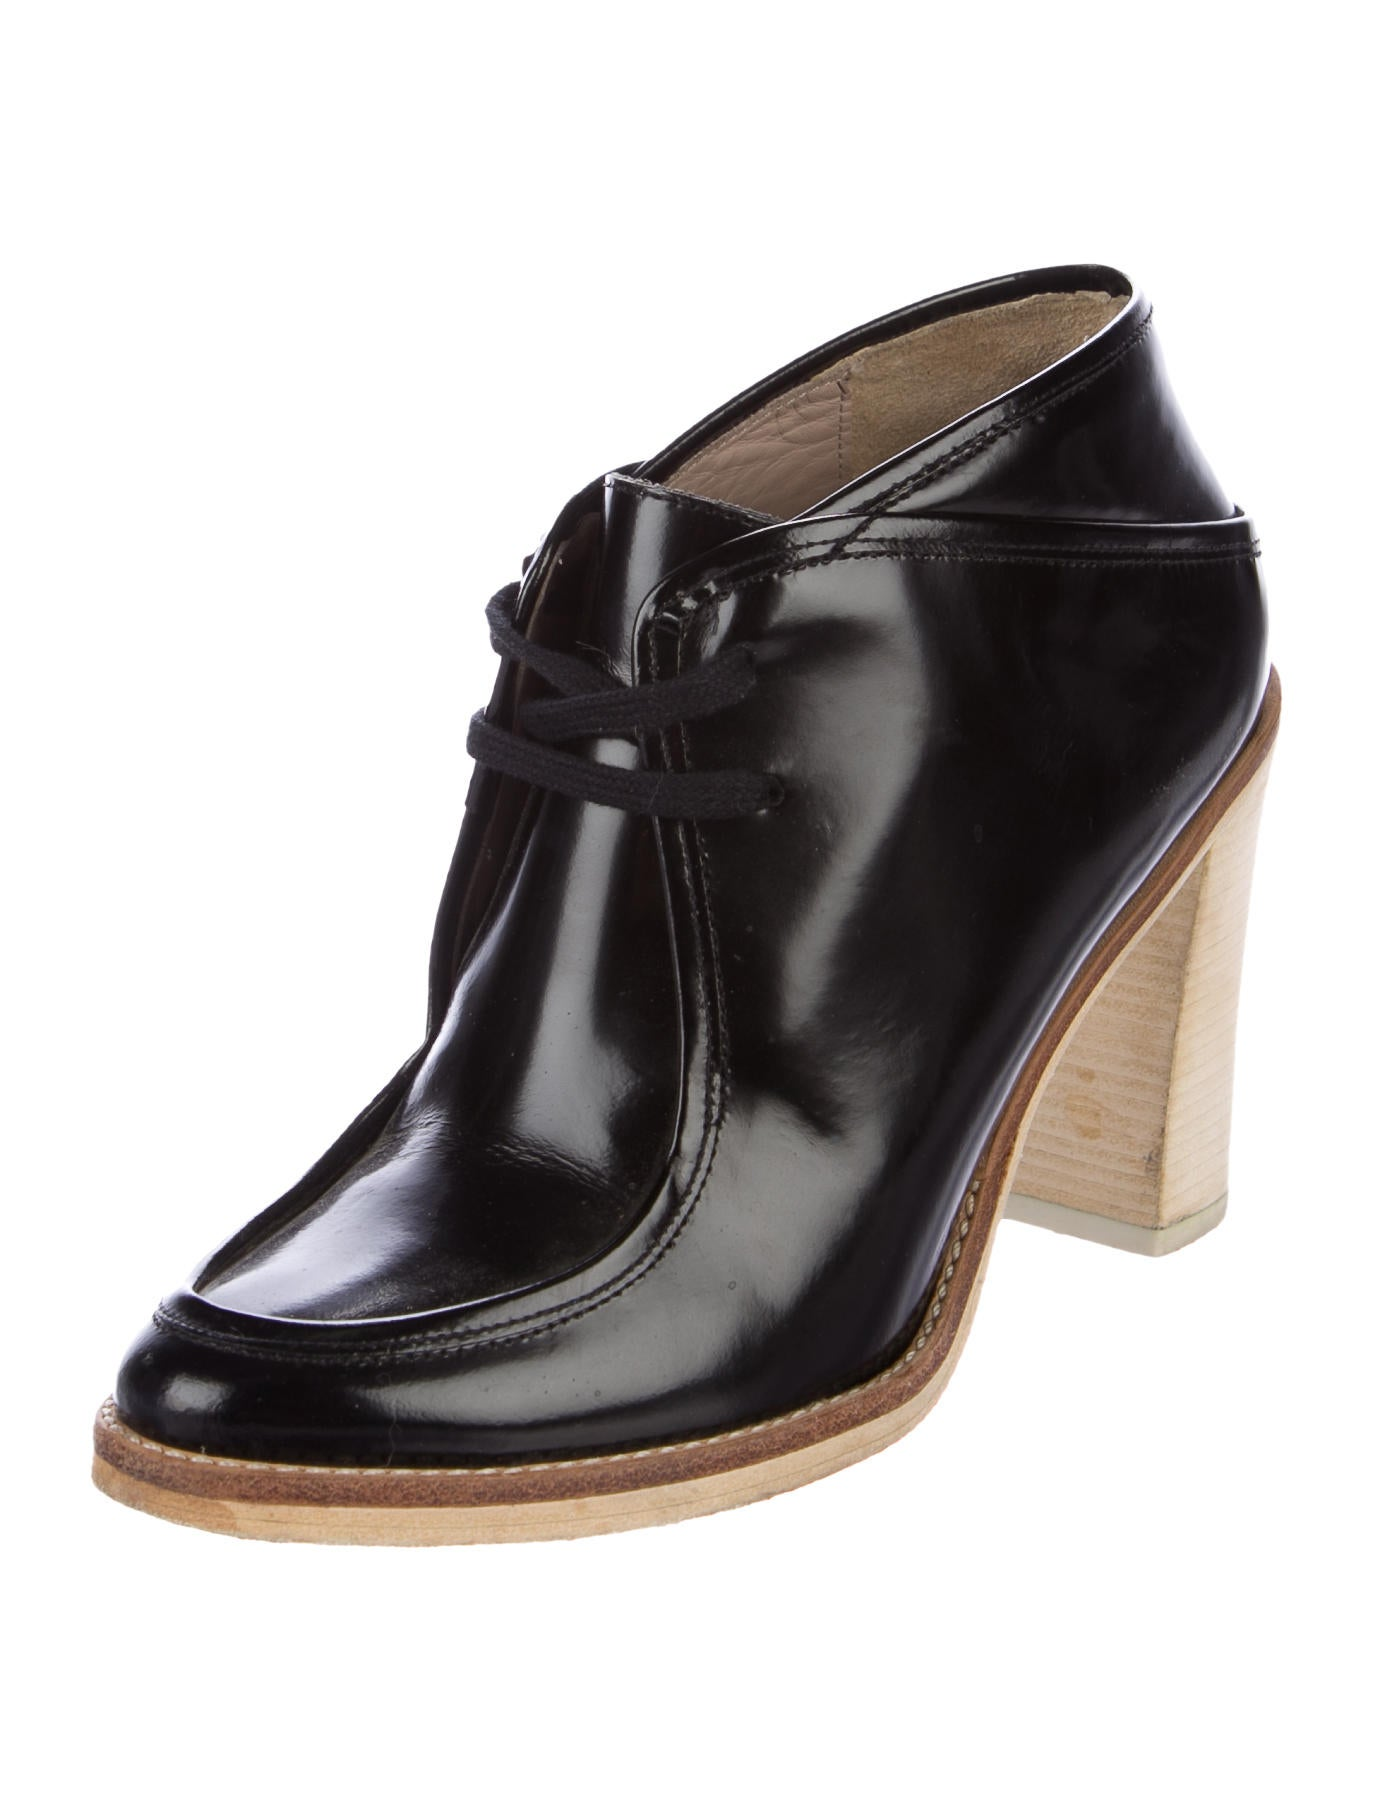 shipping discount authentic enjoy cheap online Derek Lam 10 Crosby Leather Lace-Up Ankle Boots tbScBGVV7t